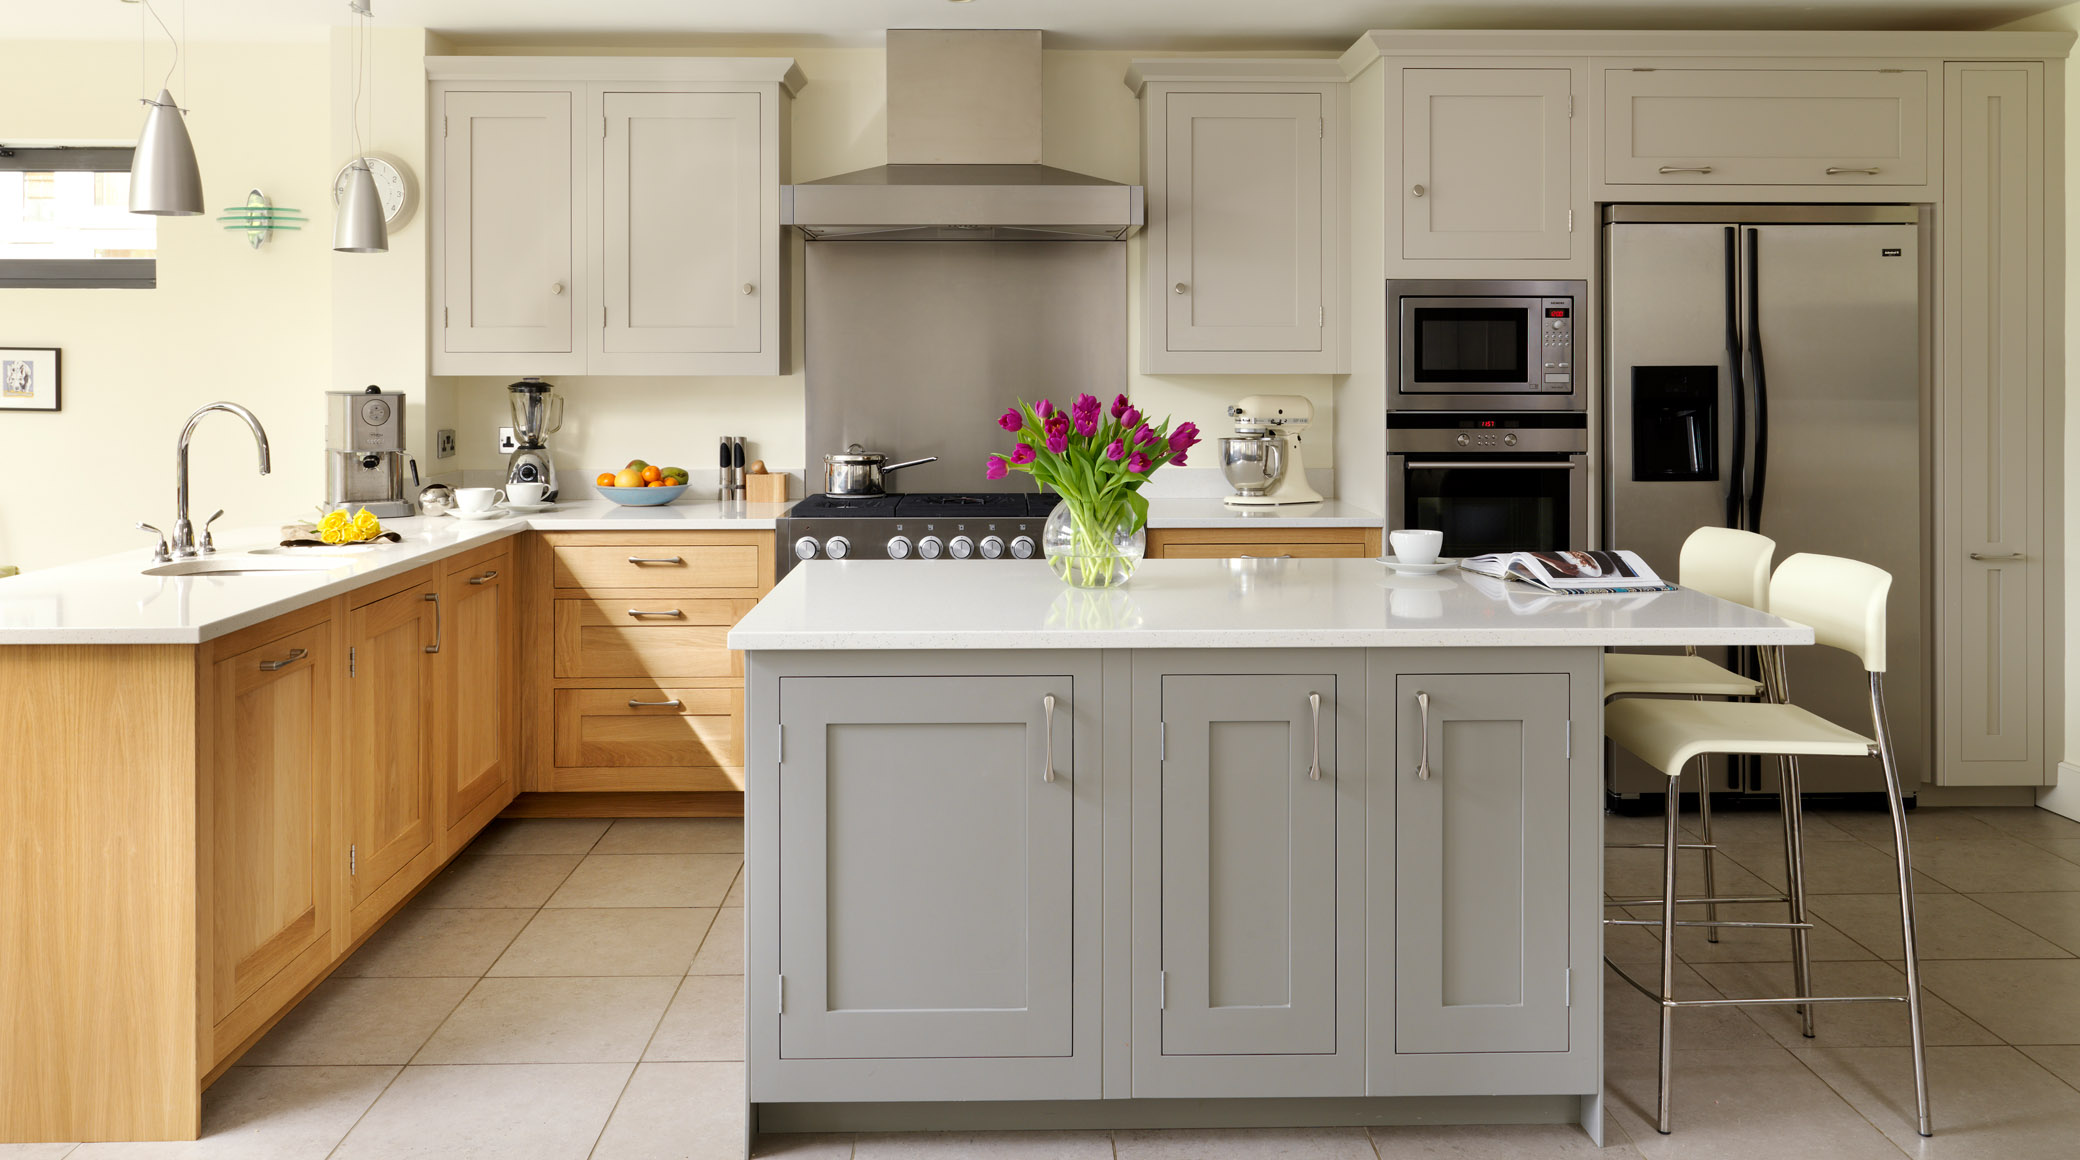 Oak painted shaker kitchen gallery kitchen pinterest for Are painted kitchen cabinets in style